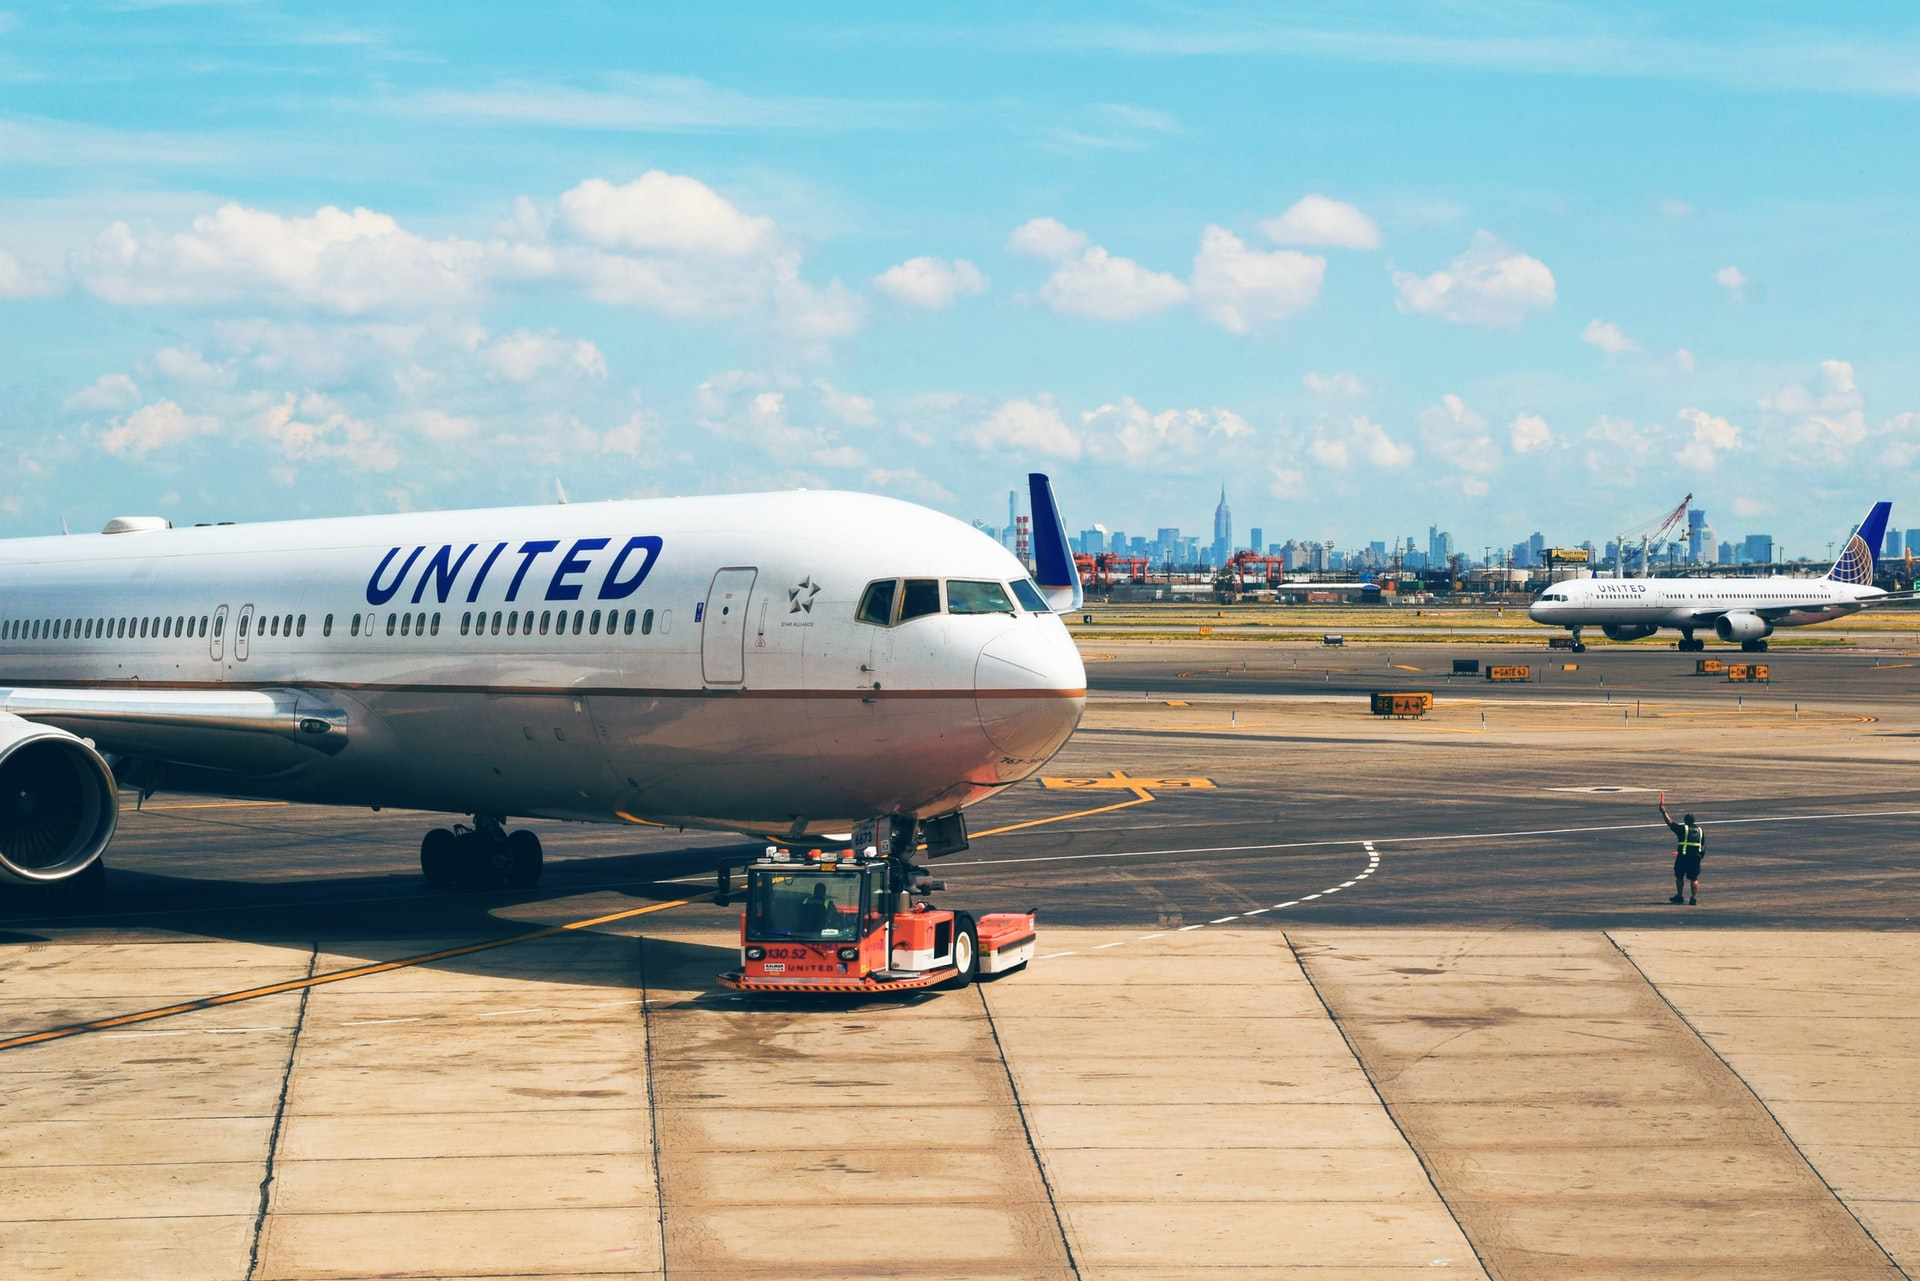 United Airlines Expanding And Reopening Flights To New International Destinations